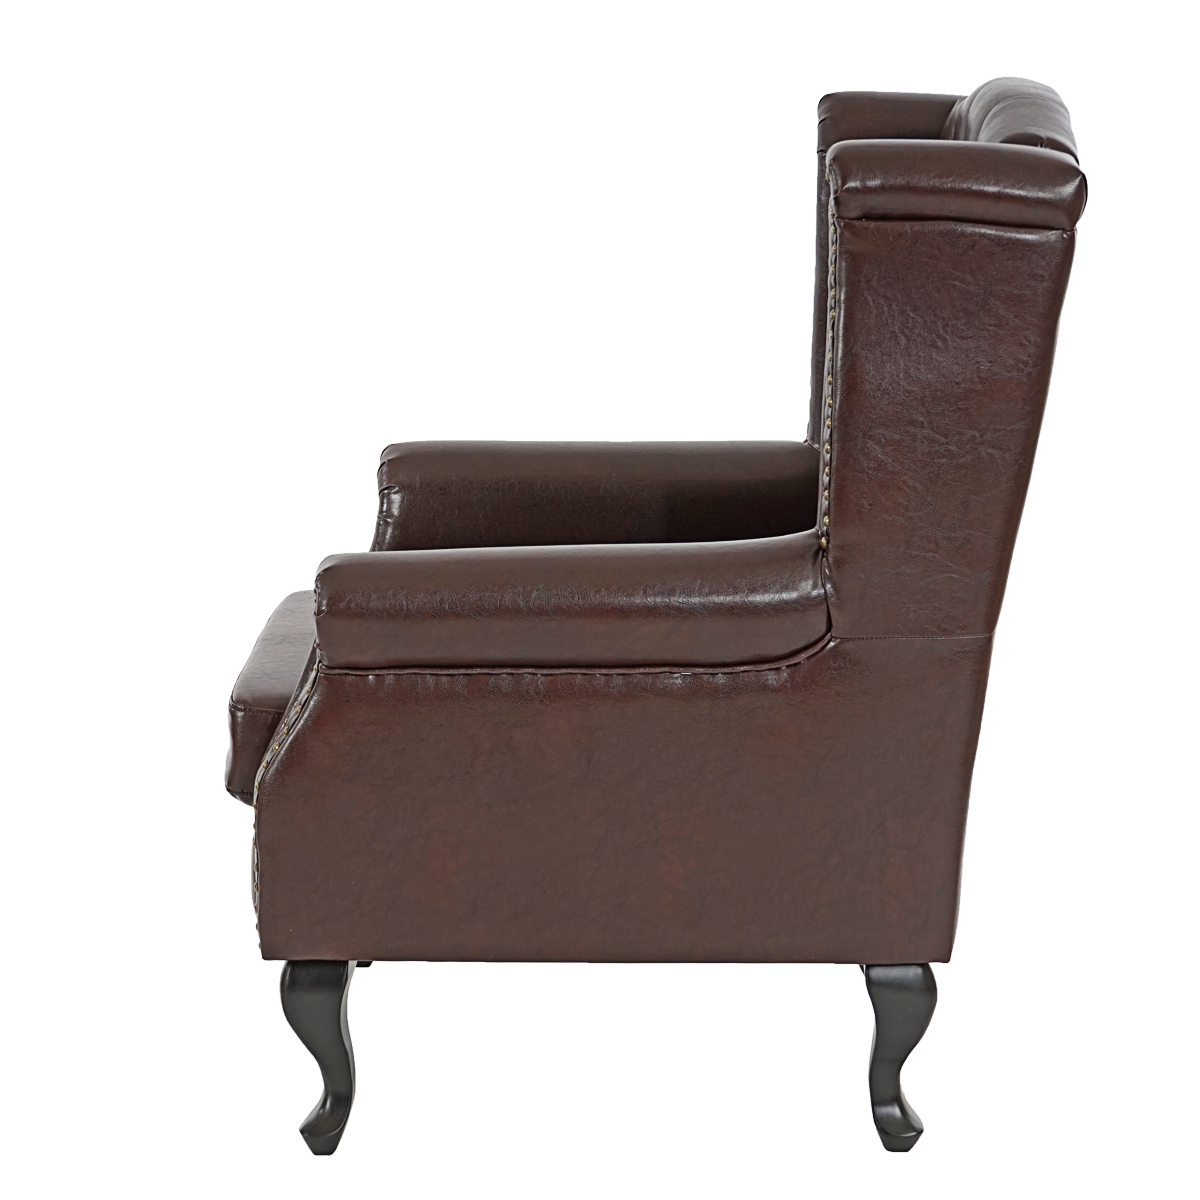 Fauteuil Sessel Sessel Relaxsessel Clubsessel Ohrensessel Chesterfield